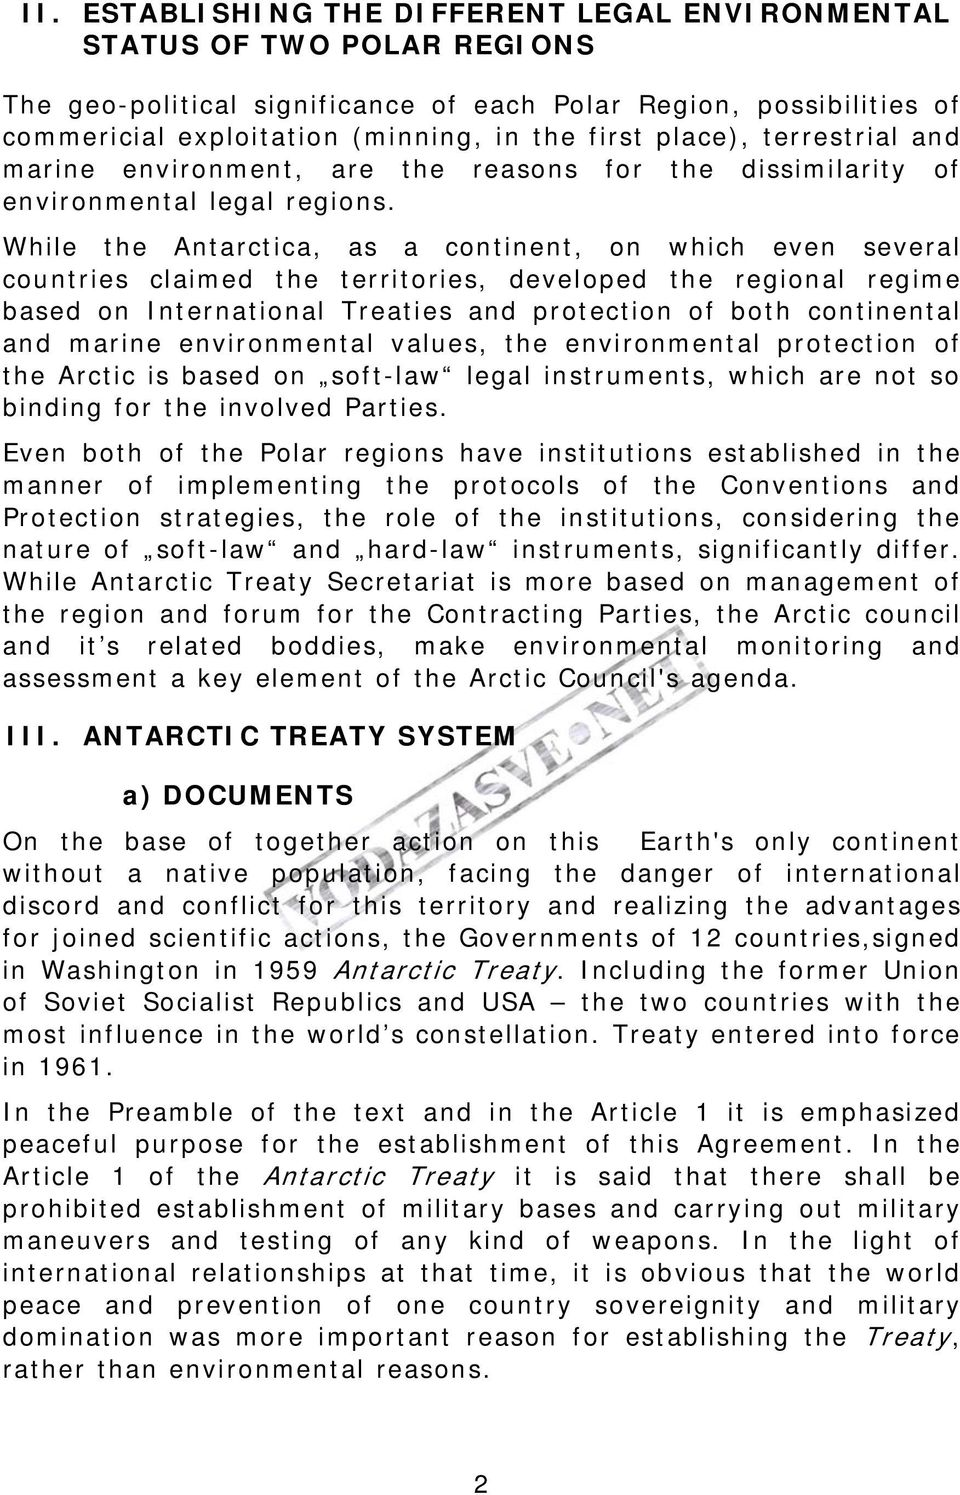 While the Antarctica, as a continent, on which even several countries claimed the territories, developed the regional regime based on International Treaties and protection of both continental and